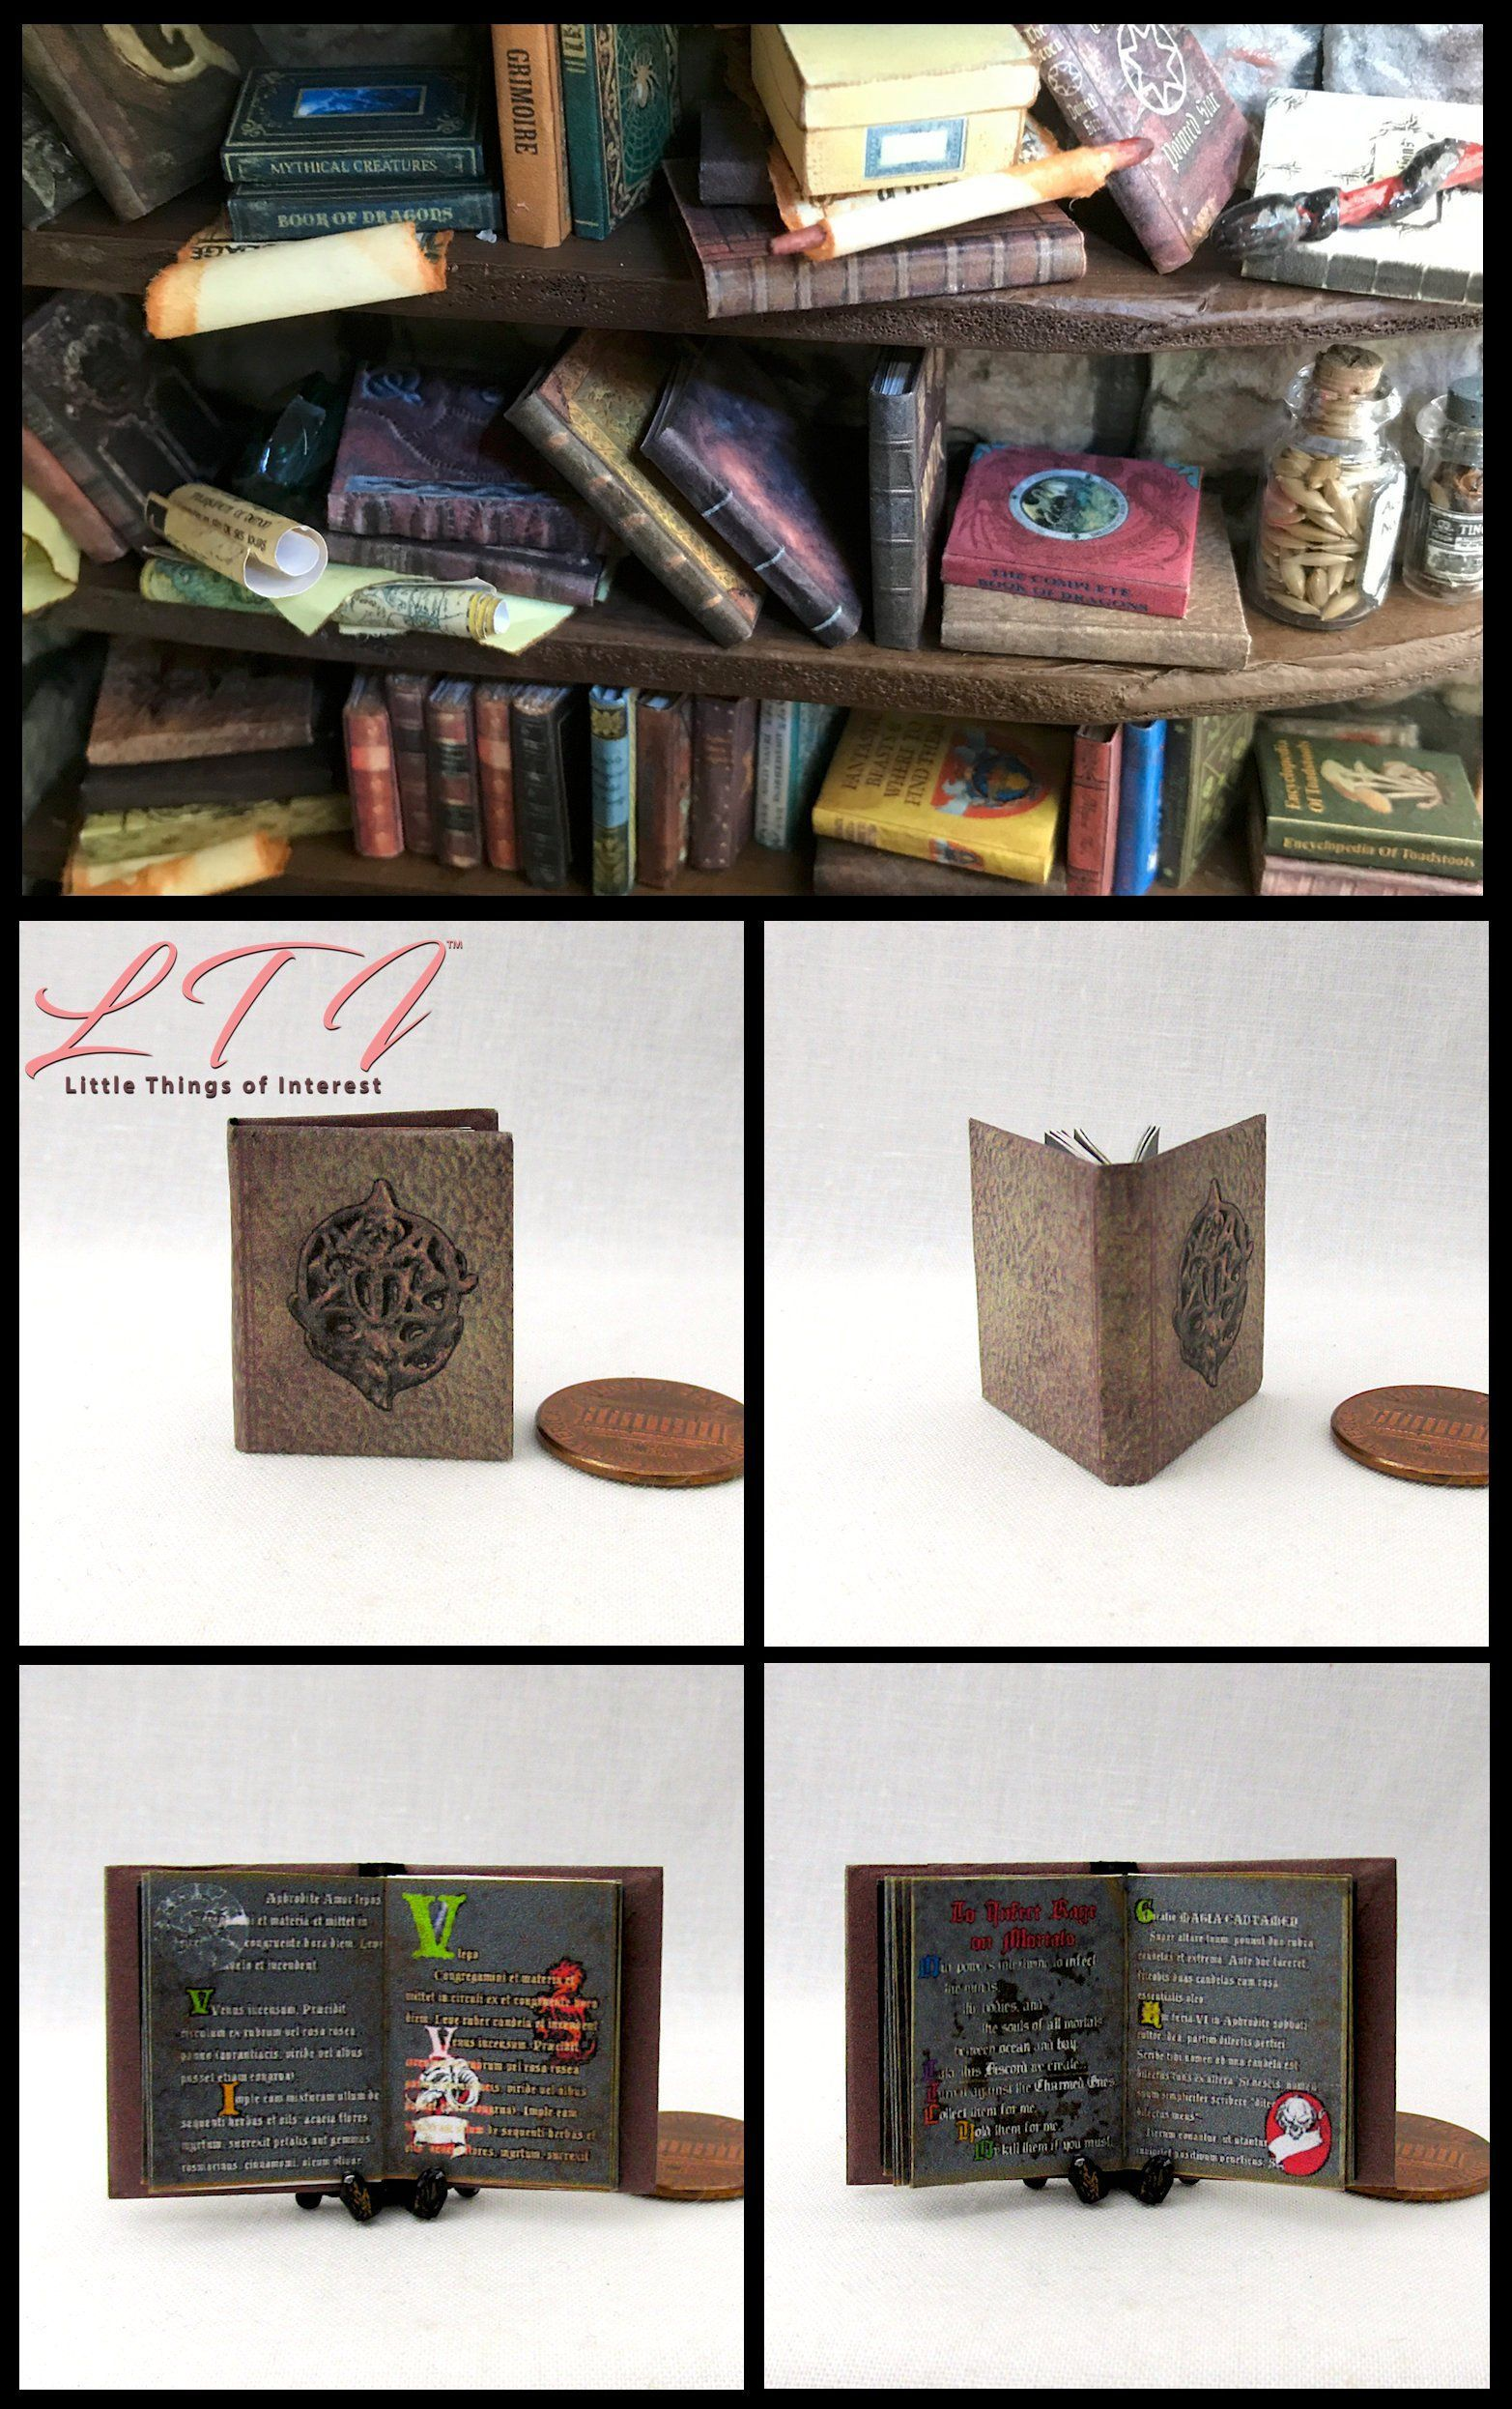 GAME OF THRONES 5 Miniature Books 1:12 Dollhouse Scale A SONG OF ICE AND FIRE